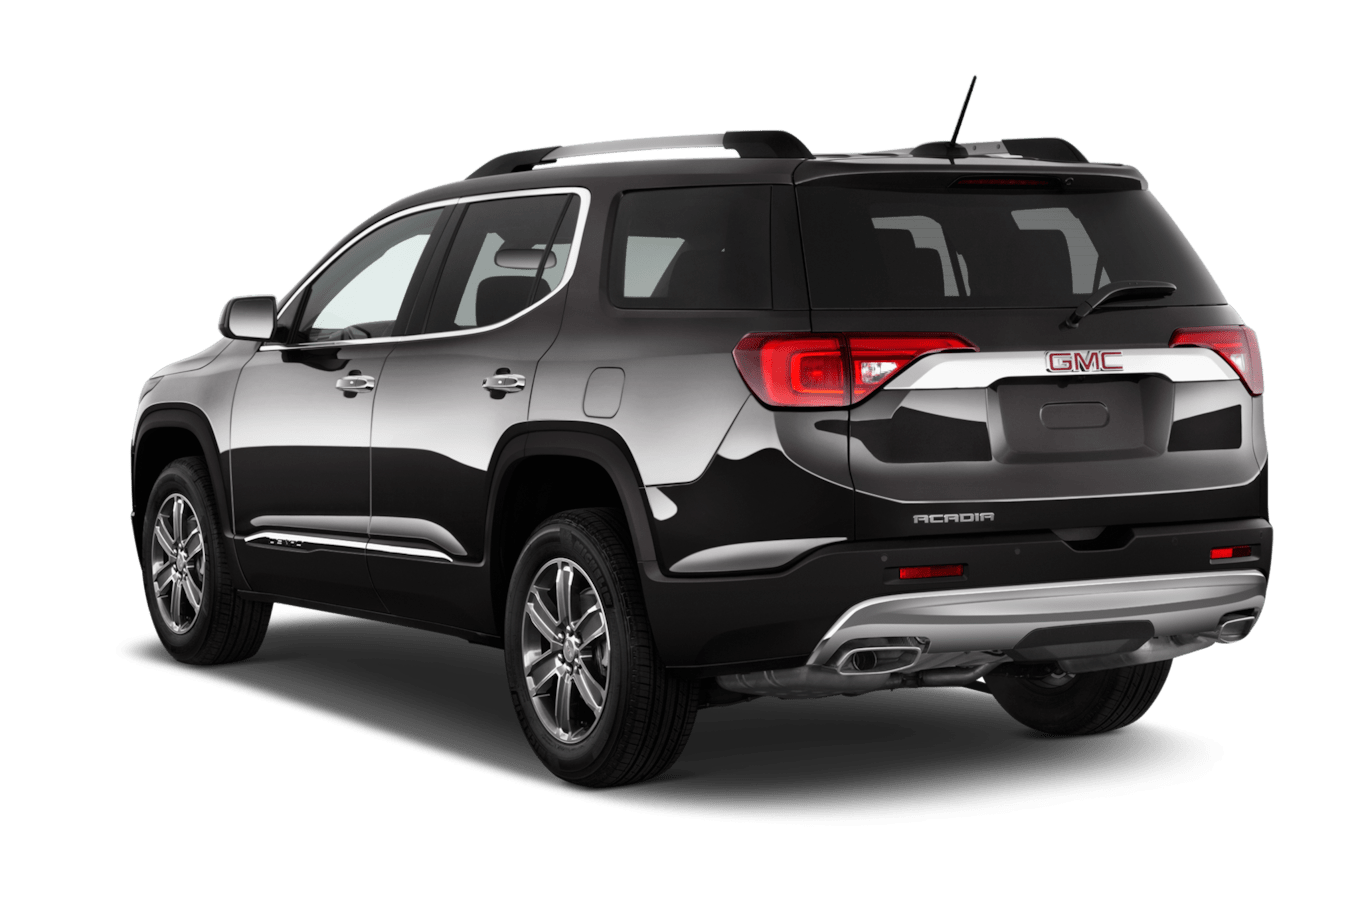 2018 Gmc Acadia Reviews And Rating  Motor Trend